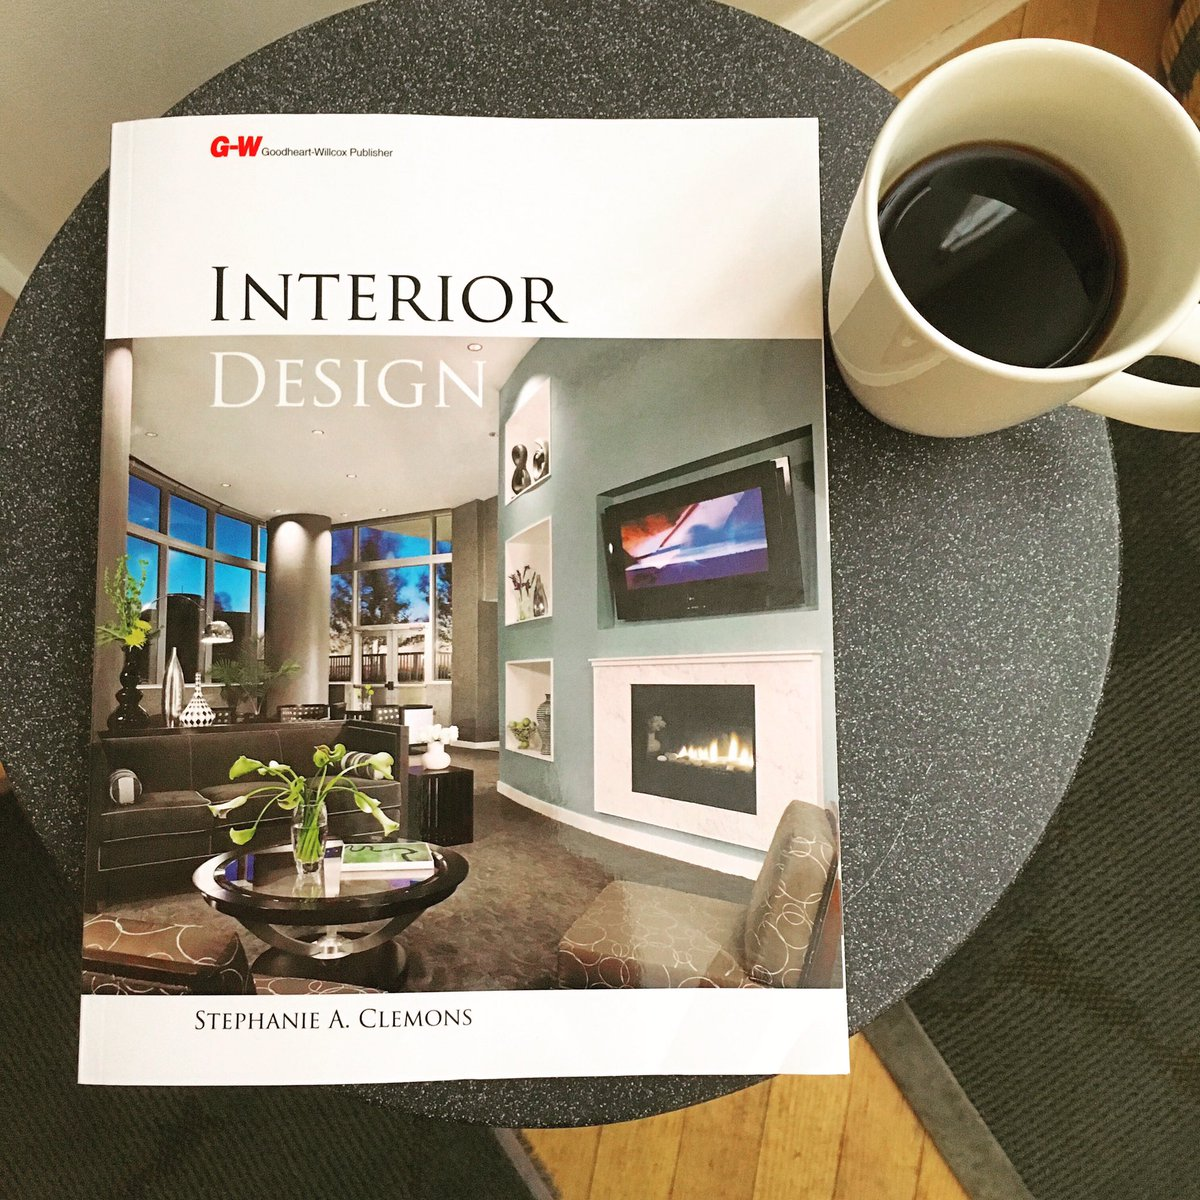 84 interior design textbook textbook interior for Interior design and decoration textbook